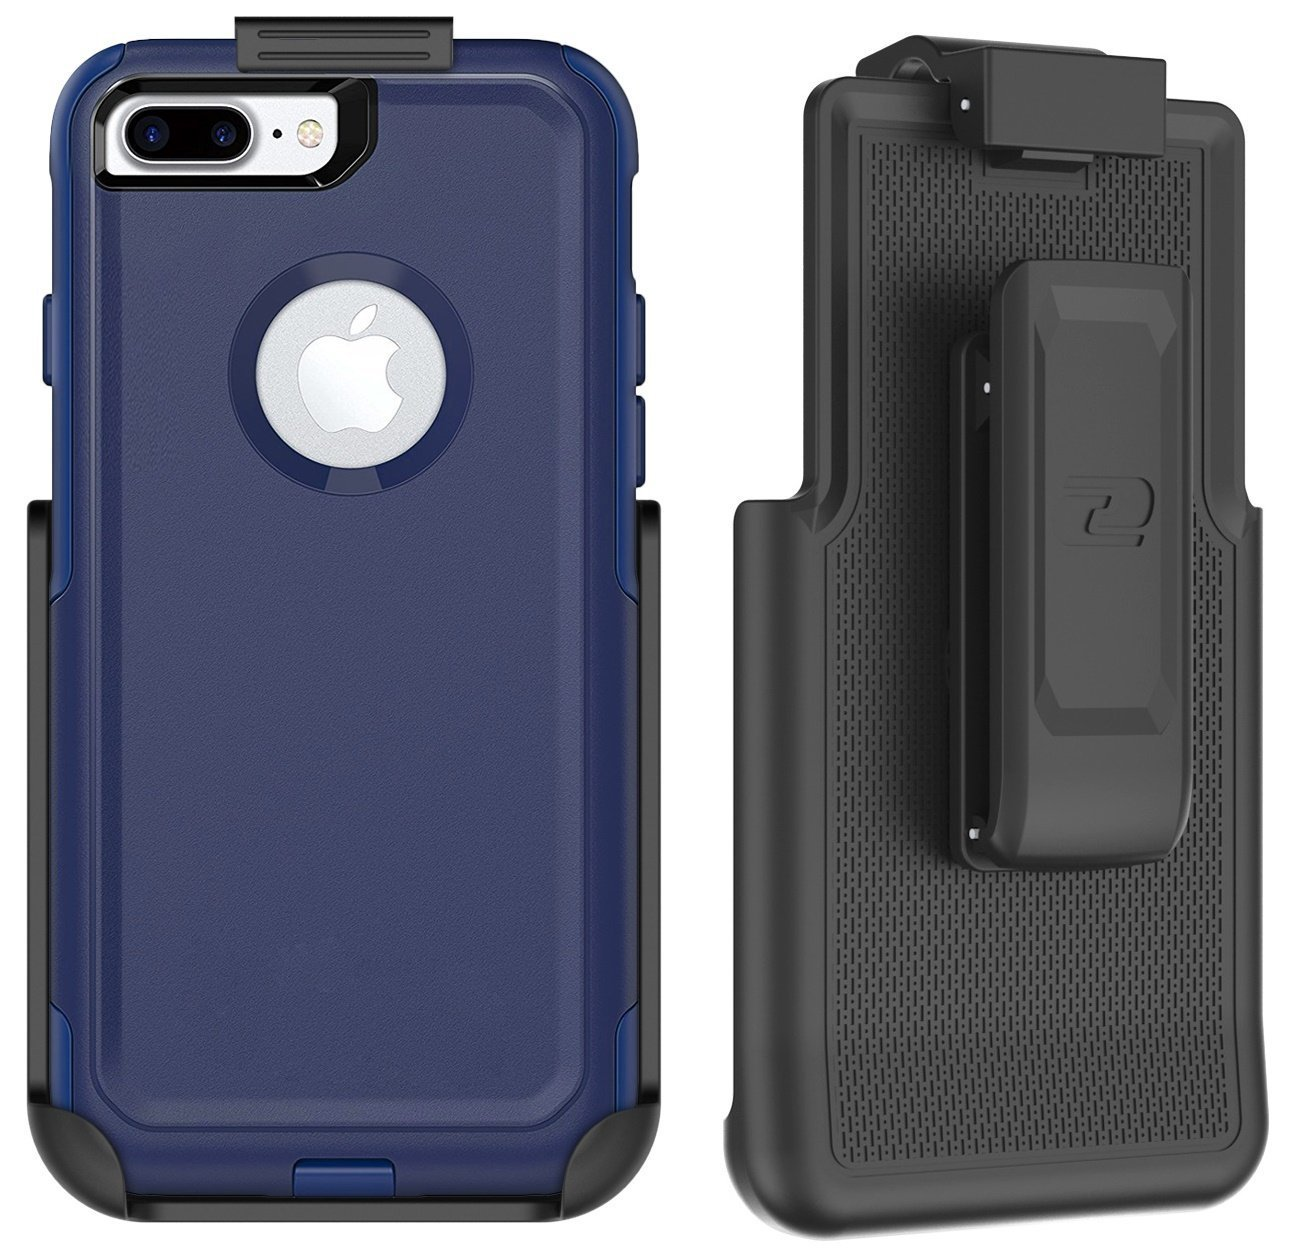 Encased Belt Clip Holster for Otterbox Commuter Series Case - iPhone 8 Plus 5.5' (case not included) HL05SF_IP8P